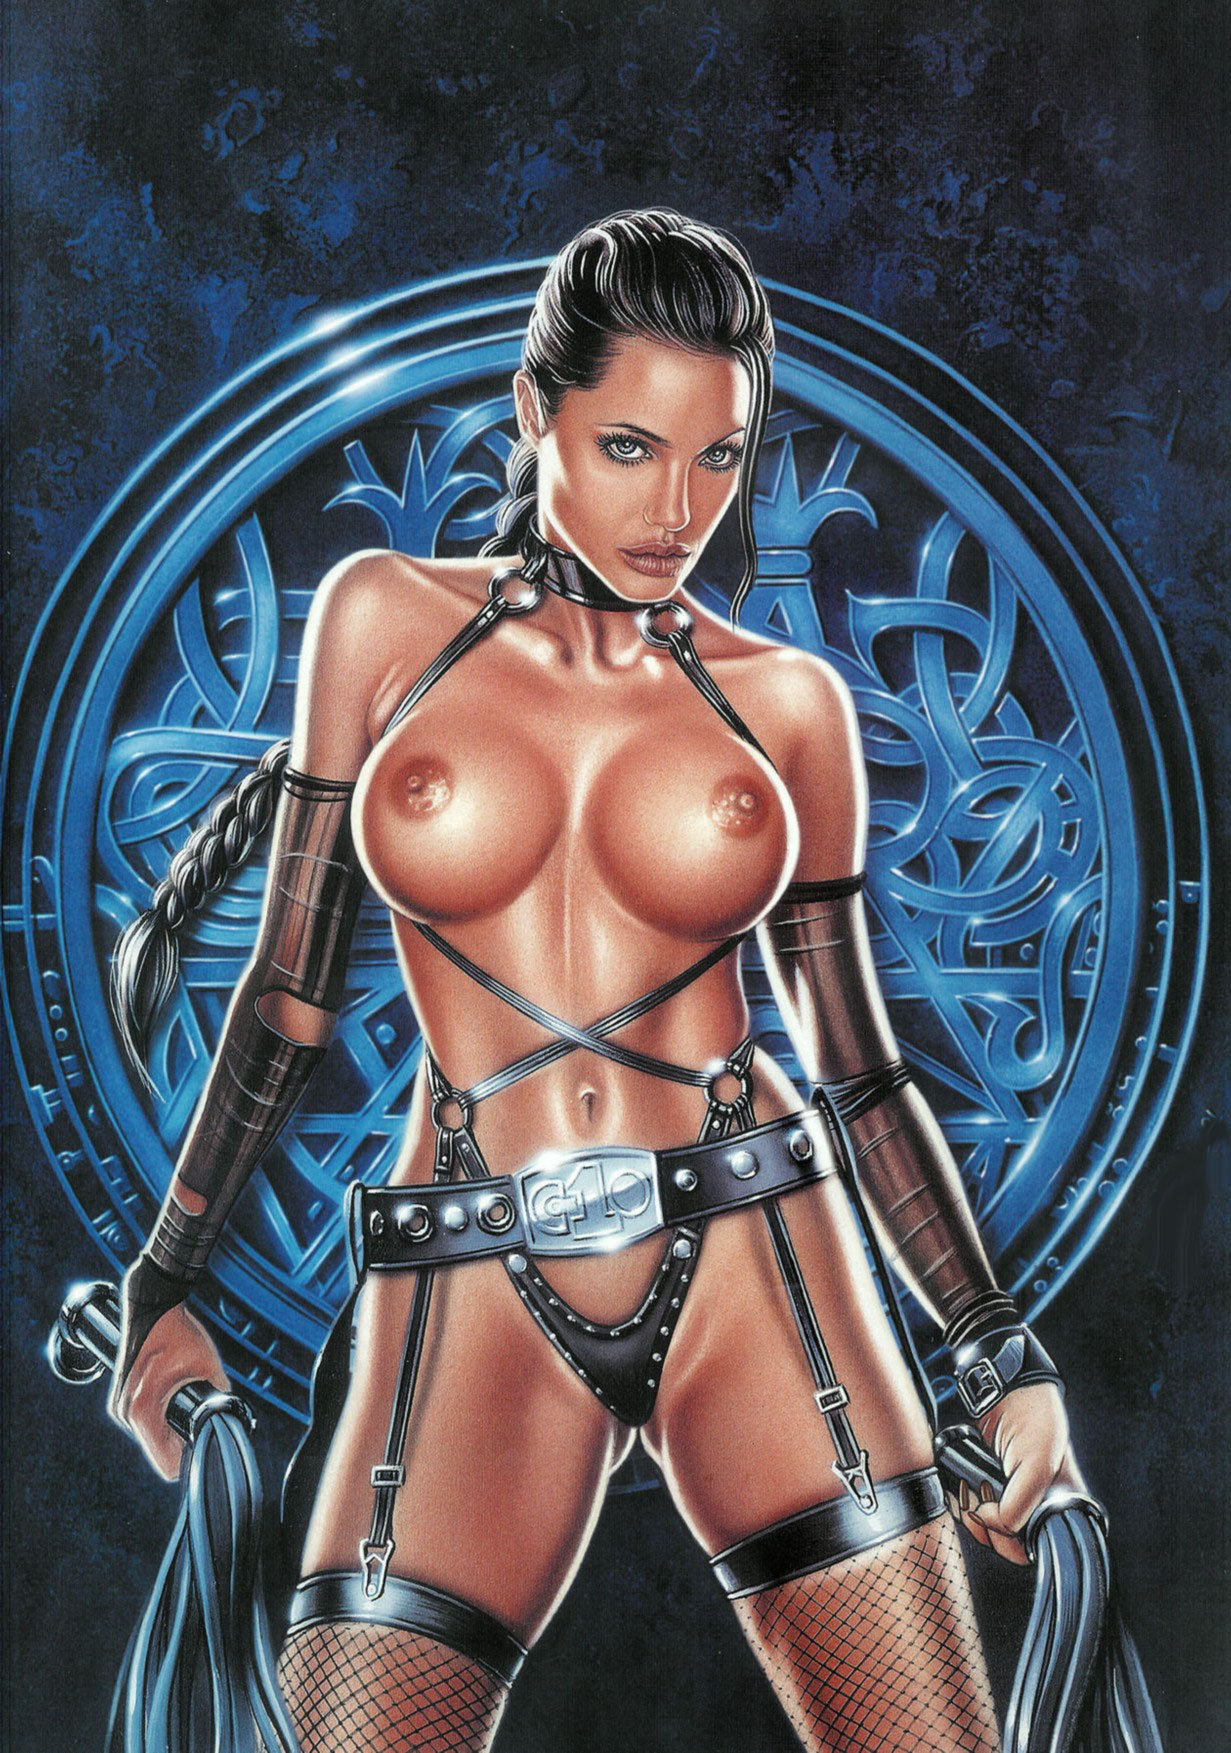 Lara croft naked cartoon sexy movie